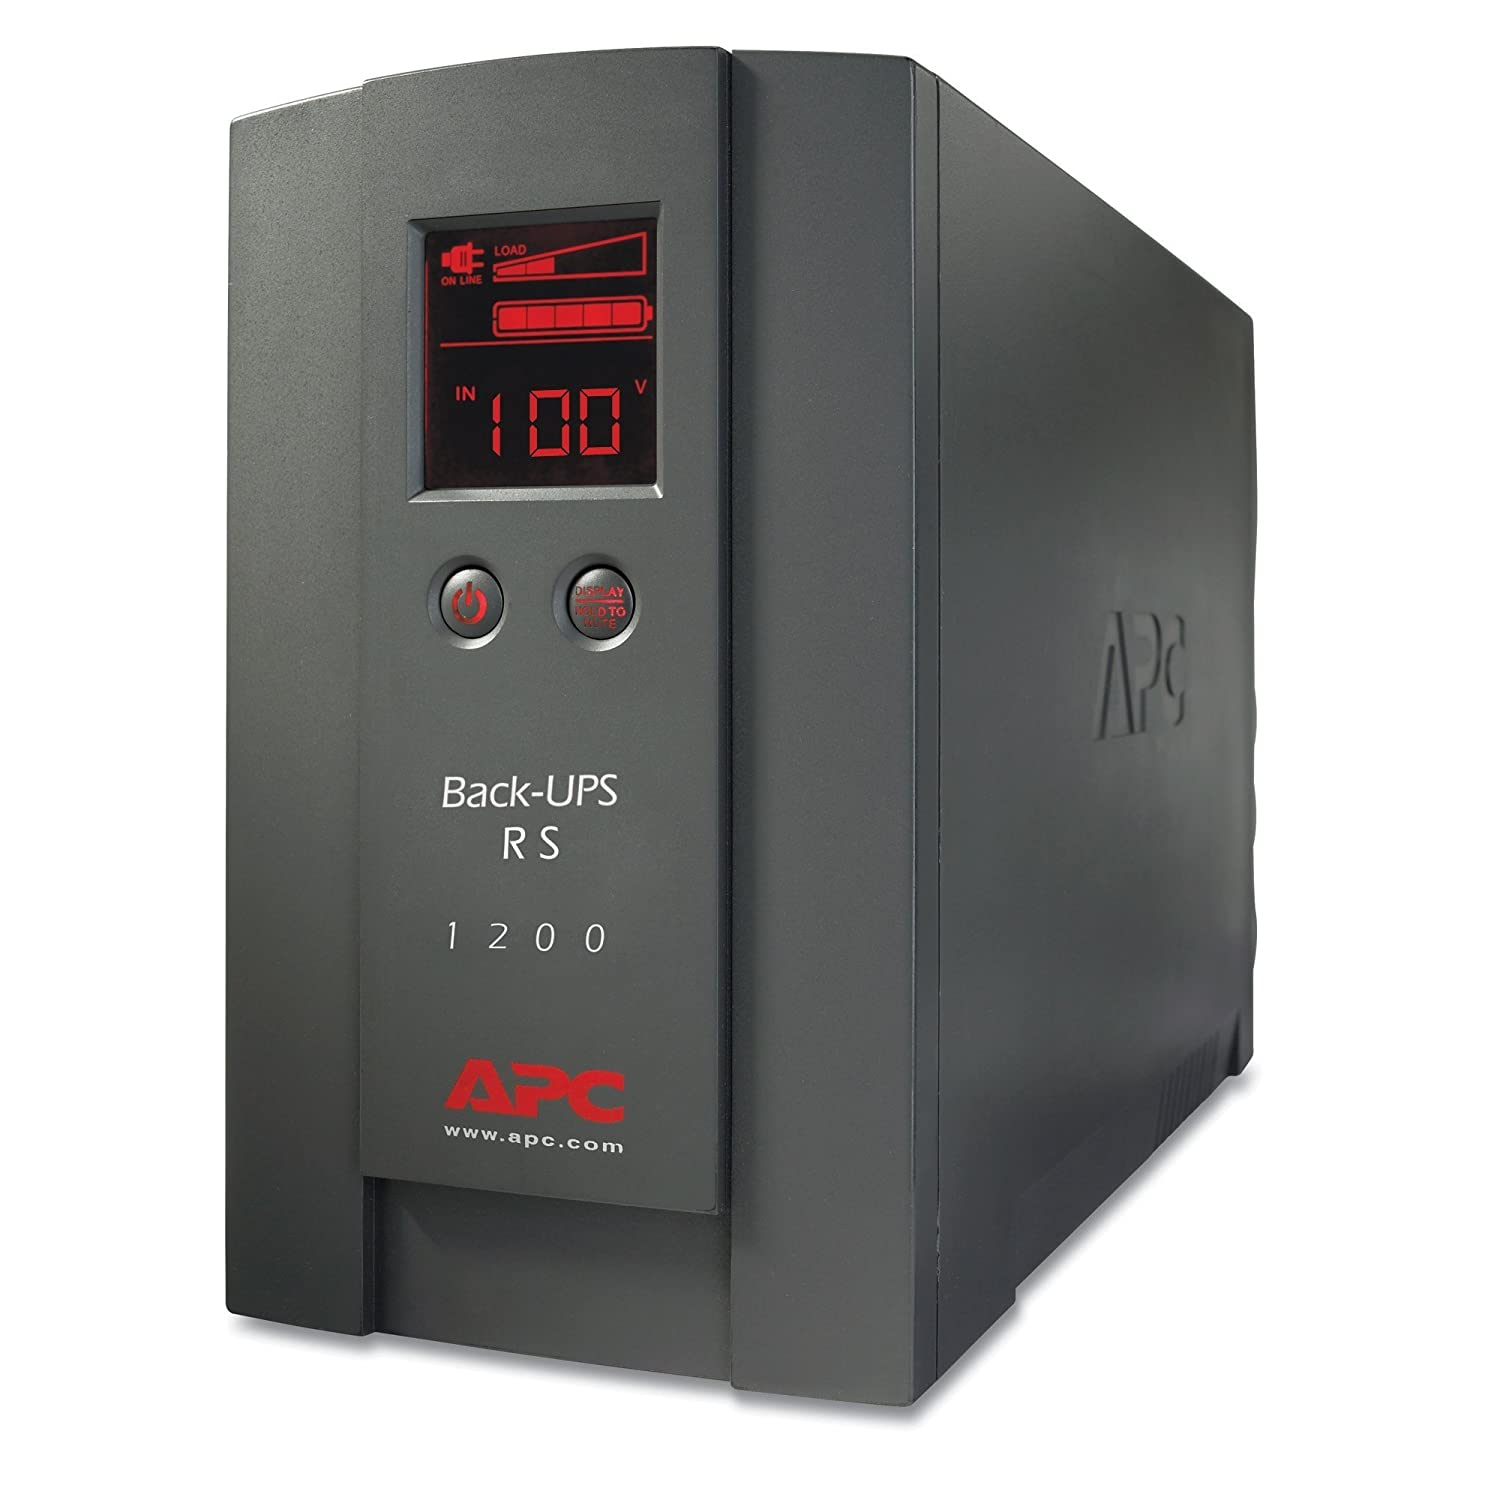 APC Back UPS RS 1200VA 720W 230V LCD Uninterruptible Power Supply - Black:  Amazon.co.uk: Computers & Accessories